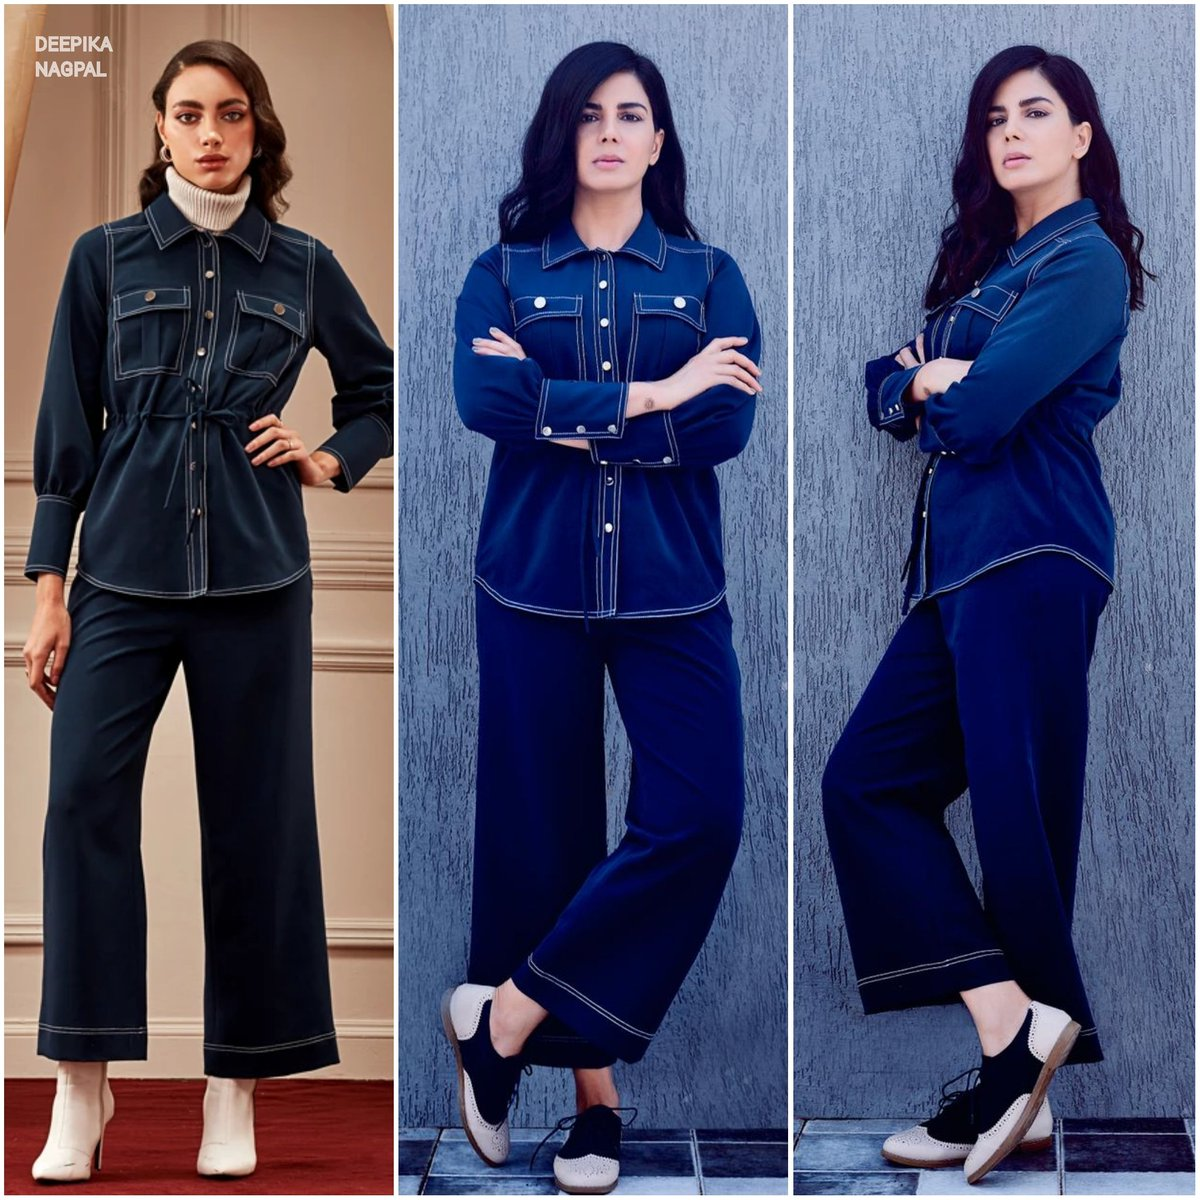 ▪️@IamKirtiKulhari begins #TheGirlOnTheTrain Film Promotions wearing a co-ord set by #LabelDeepikaNagpal  Styling - Pranay Jaitly & Shounak Amonkar  #OOTD #KirtiKulhari #TGOTT